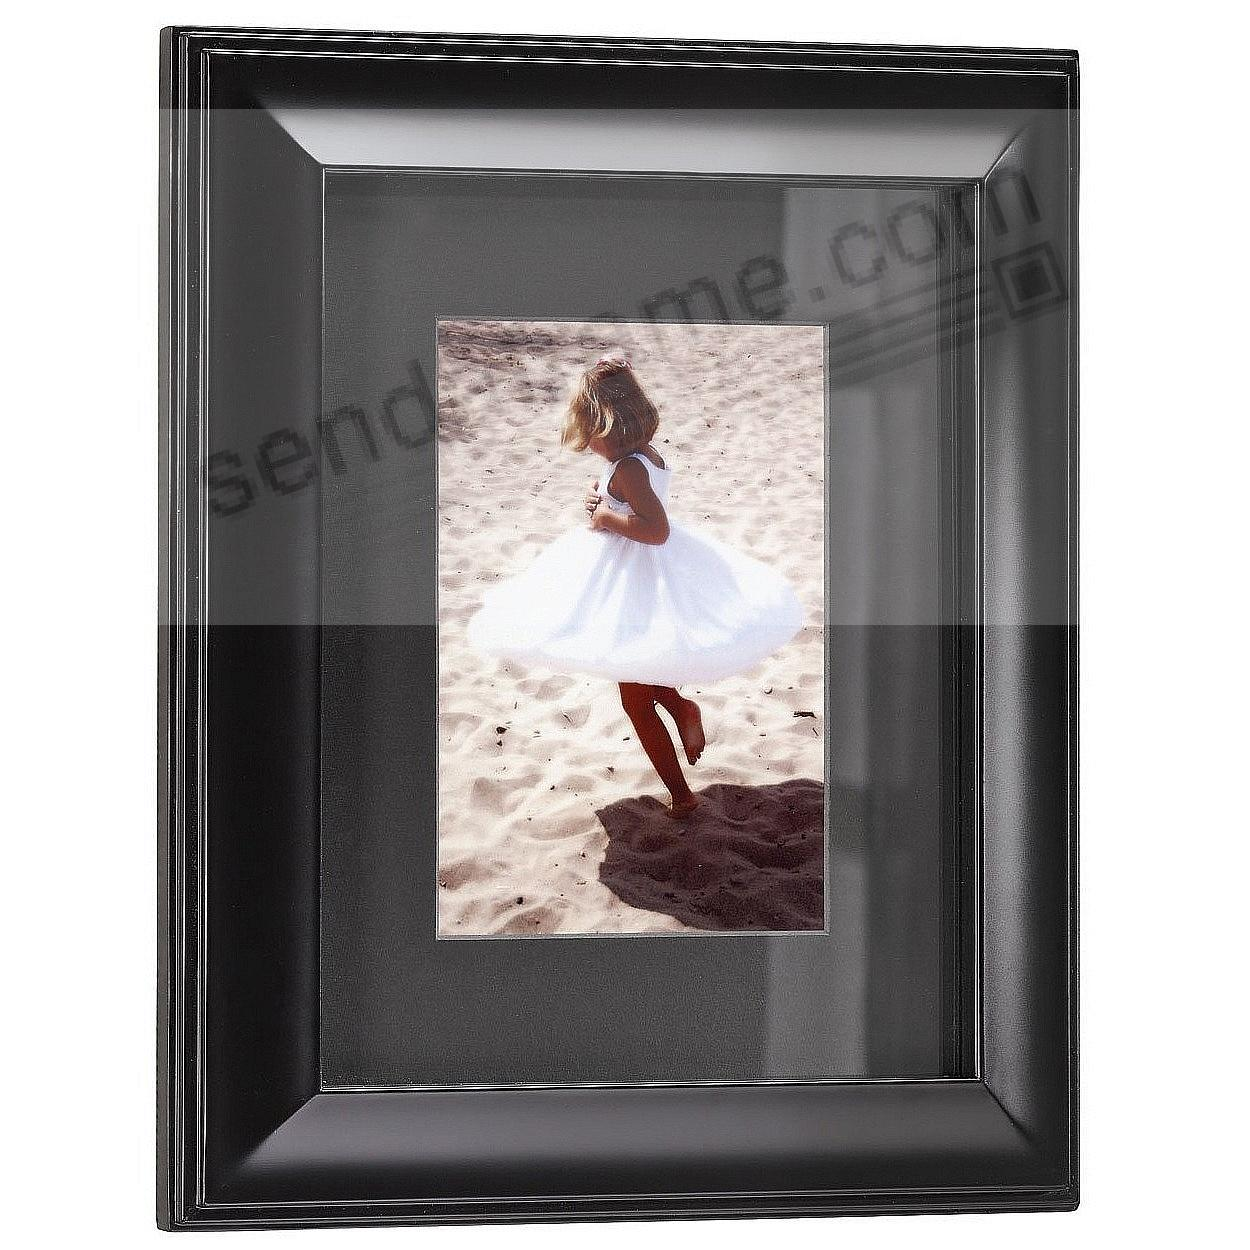 HUDSON Black-Matted Ebony-Black Wood frame 11x14/8x10 from ARTCARE® by Nielsen®